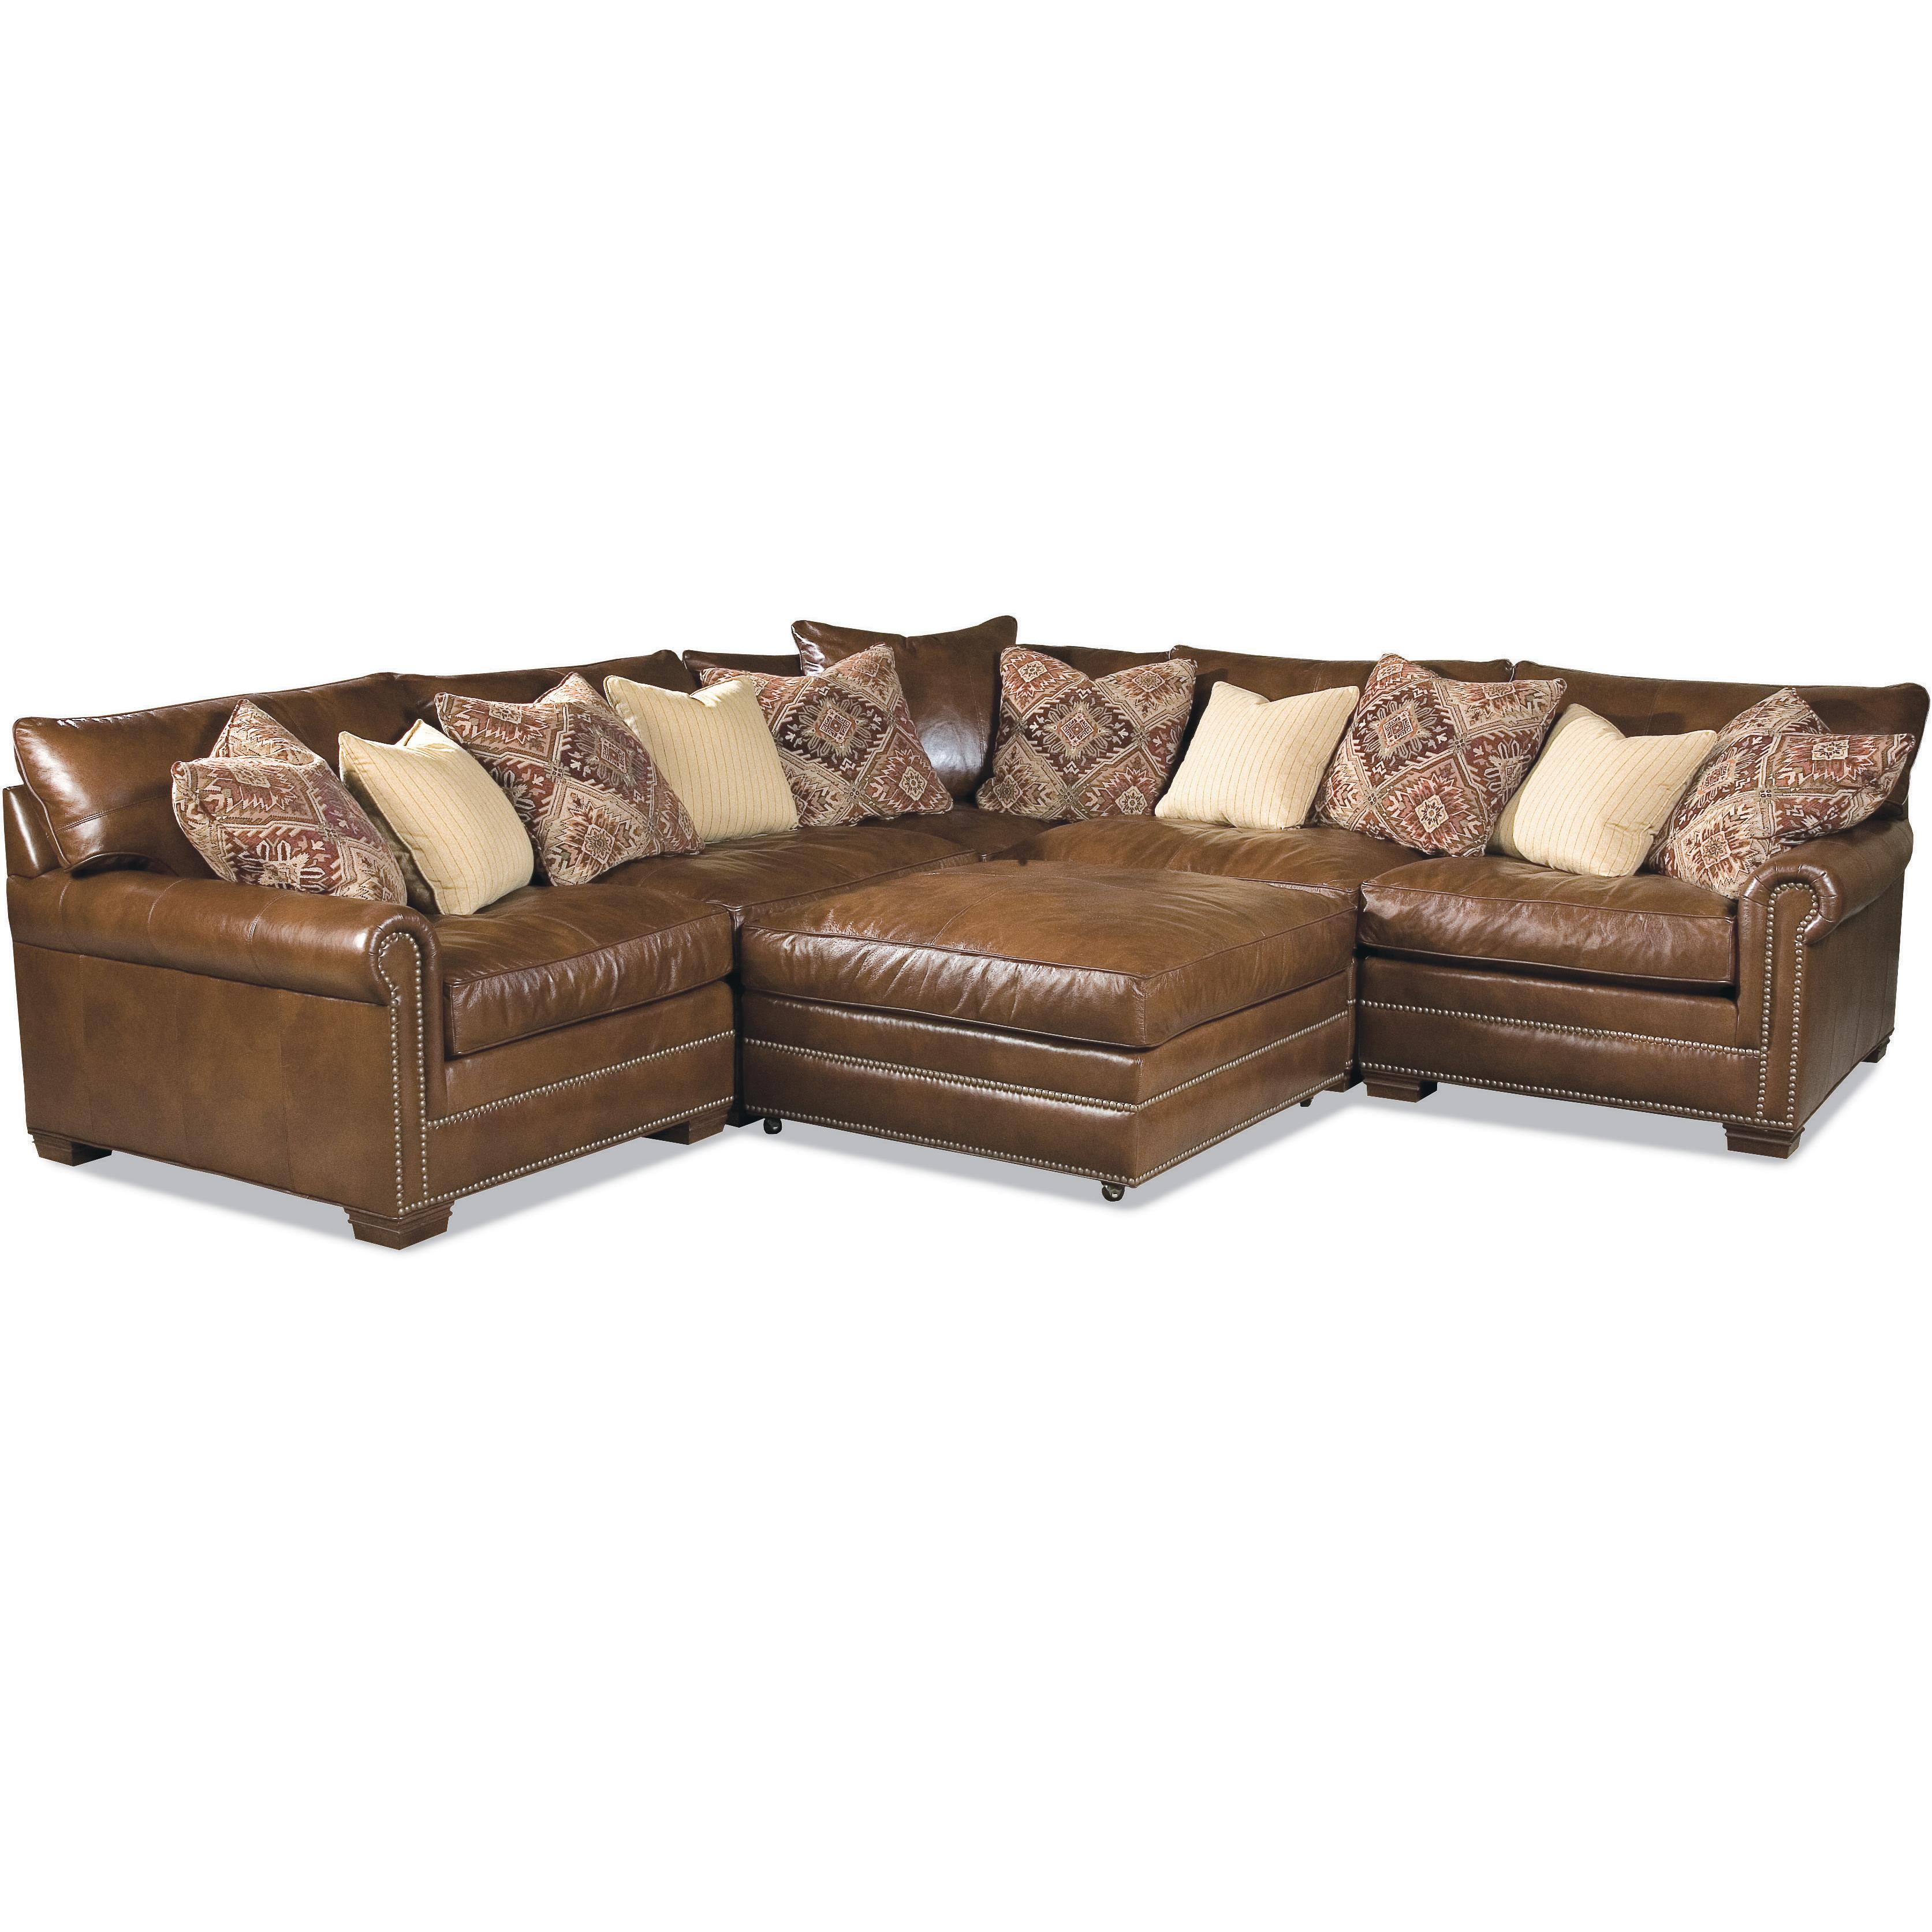 Huntington house 7107 ryan traditional sectional sofa with for Traditional sectional